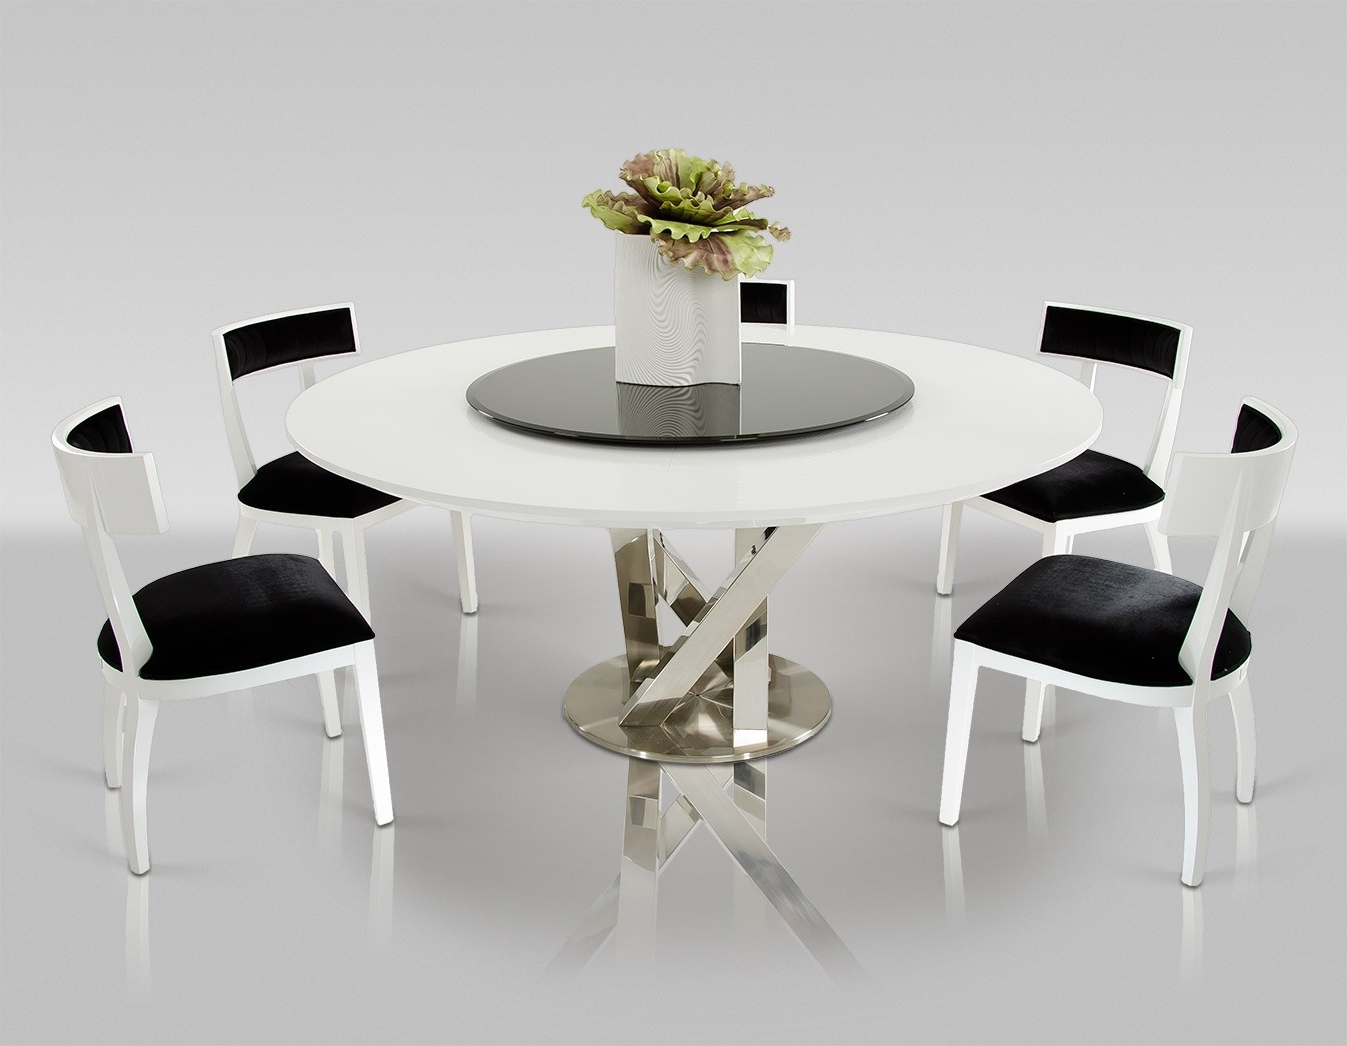 8 chair table size veritas folding adirondack plans 30 eyecatching round dining room tables design ideas for